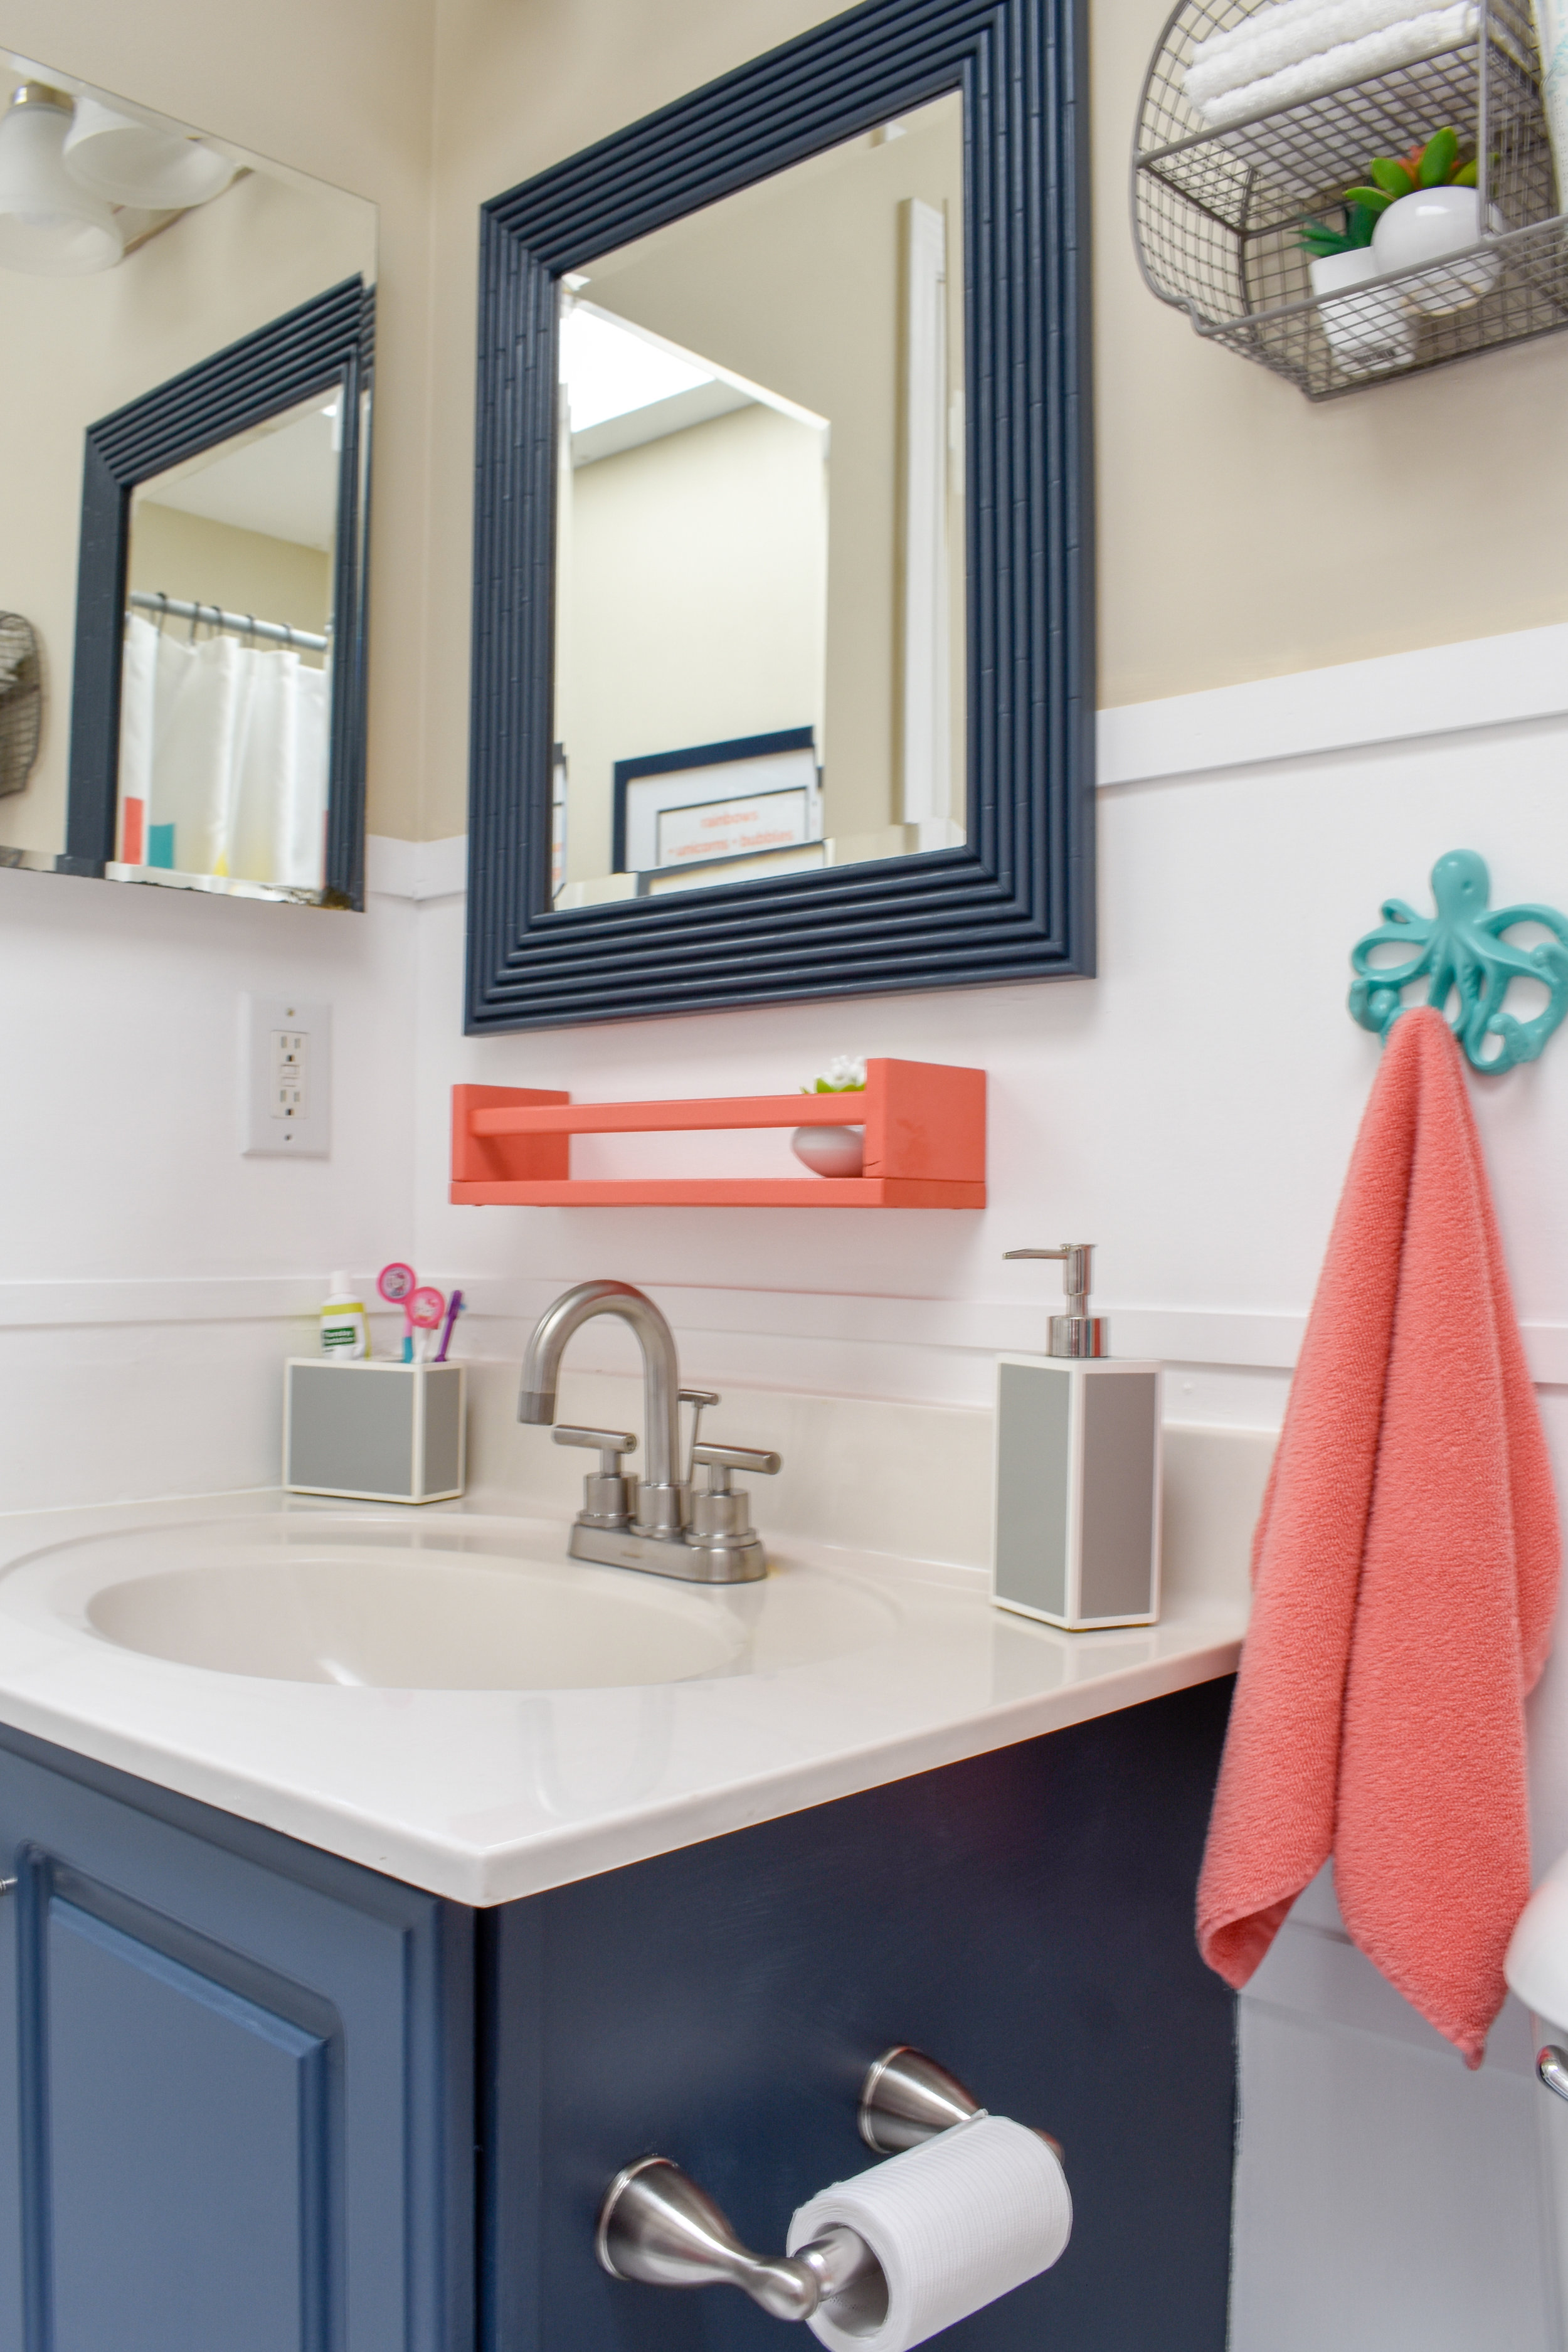 One Day Makeover Staging A Kid S Bathroom To Sell In Just 8 Hours For Under 200 T Moore Home Design Diy And Affordable Decorating Ideas